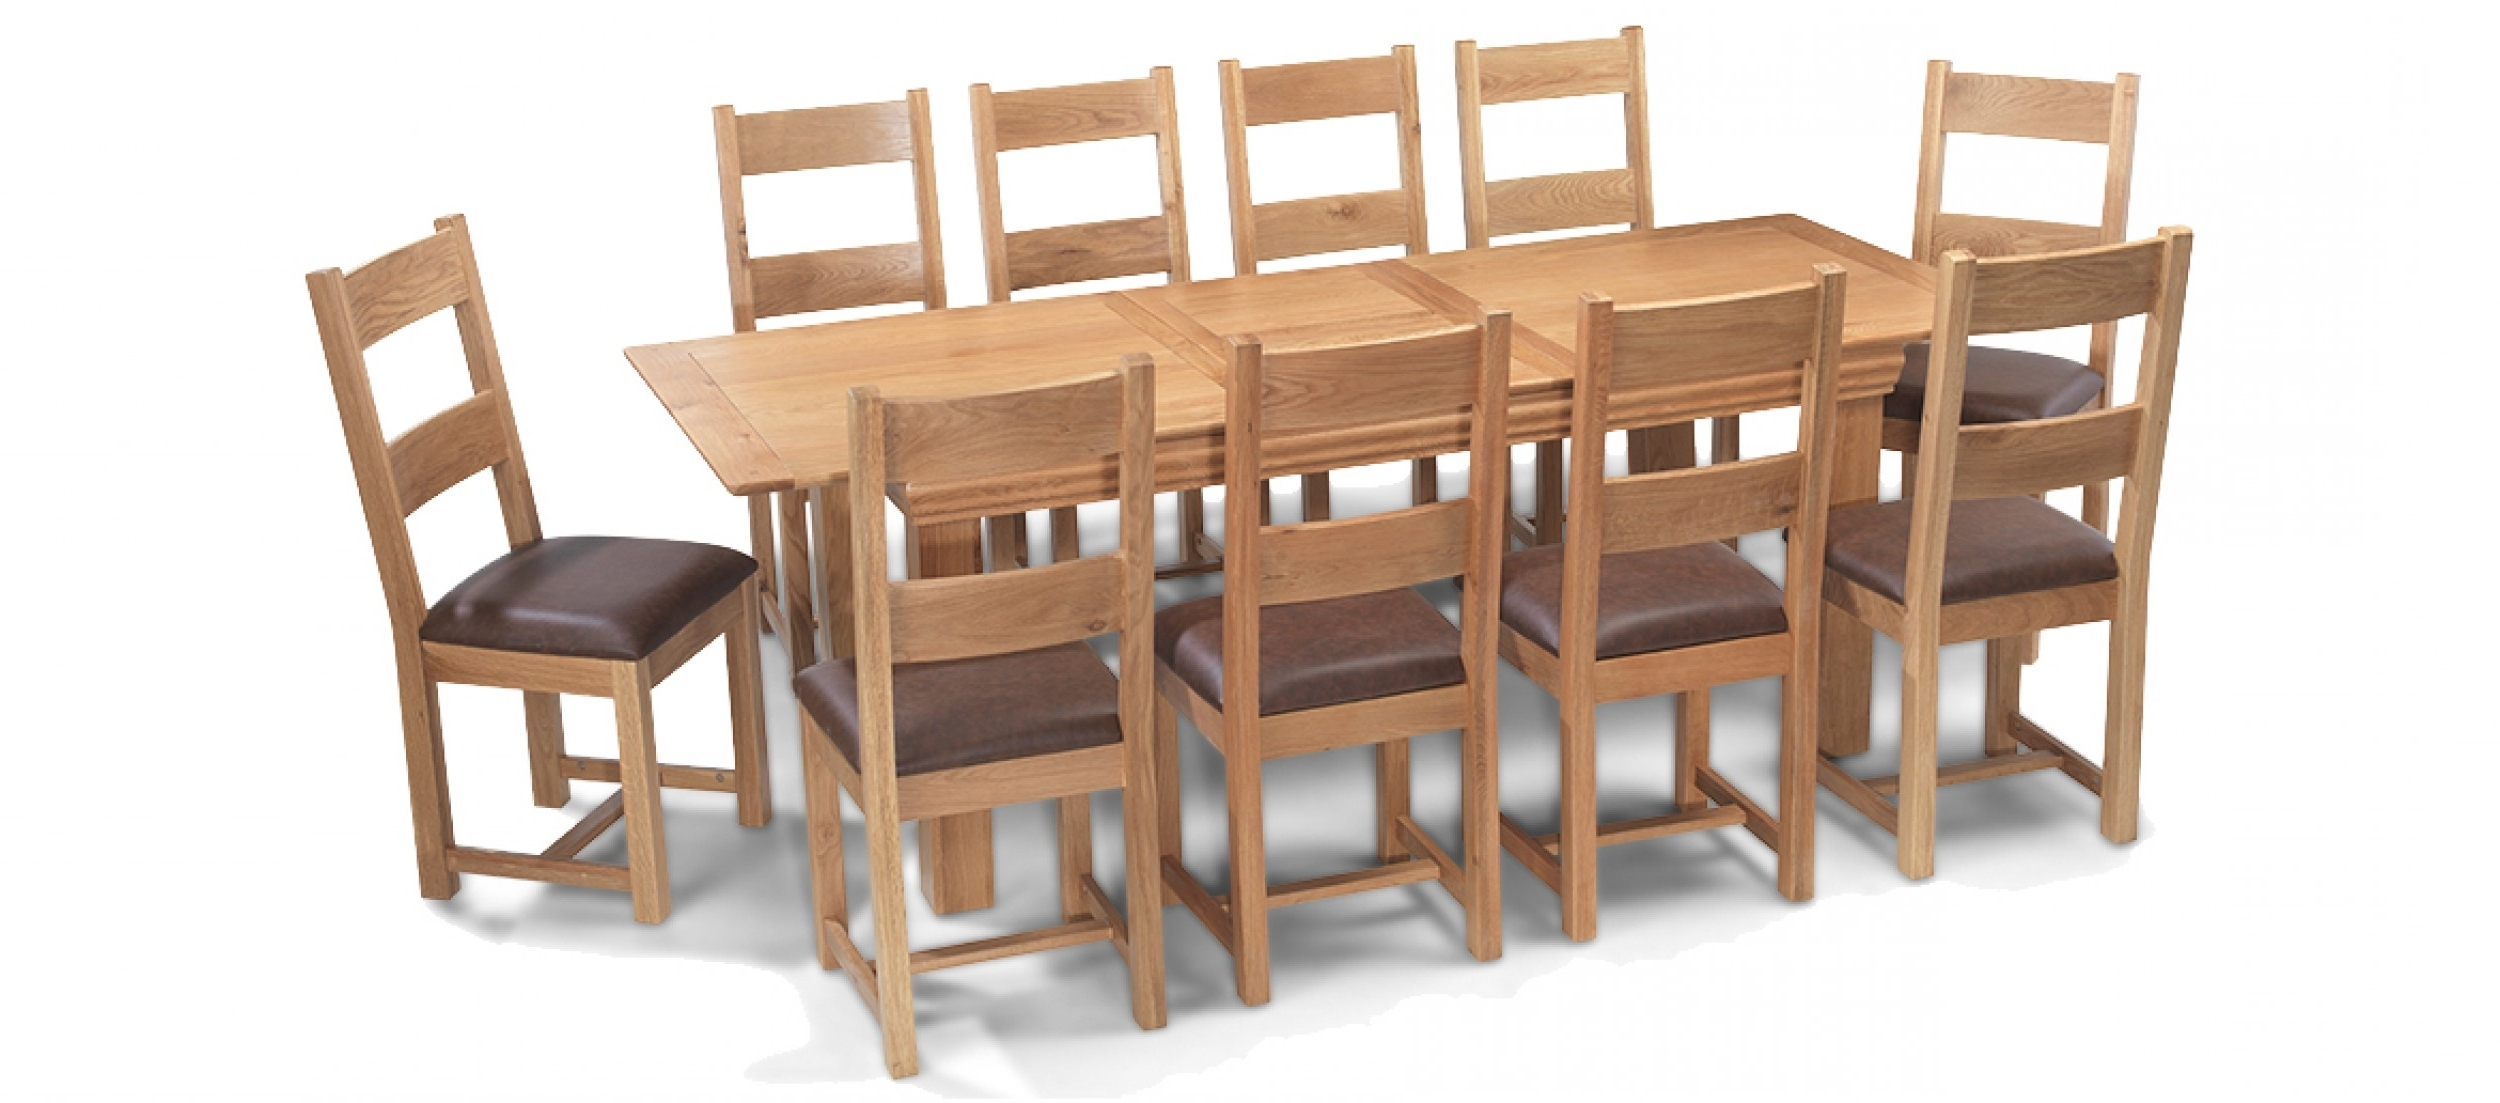 Constance Oak 180 230 Cm Extending Dining Table And 10 Chairs Pertaining To Recent Dining Table And 10 Chairs (View 4 of 25)